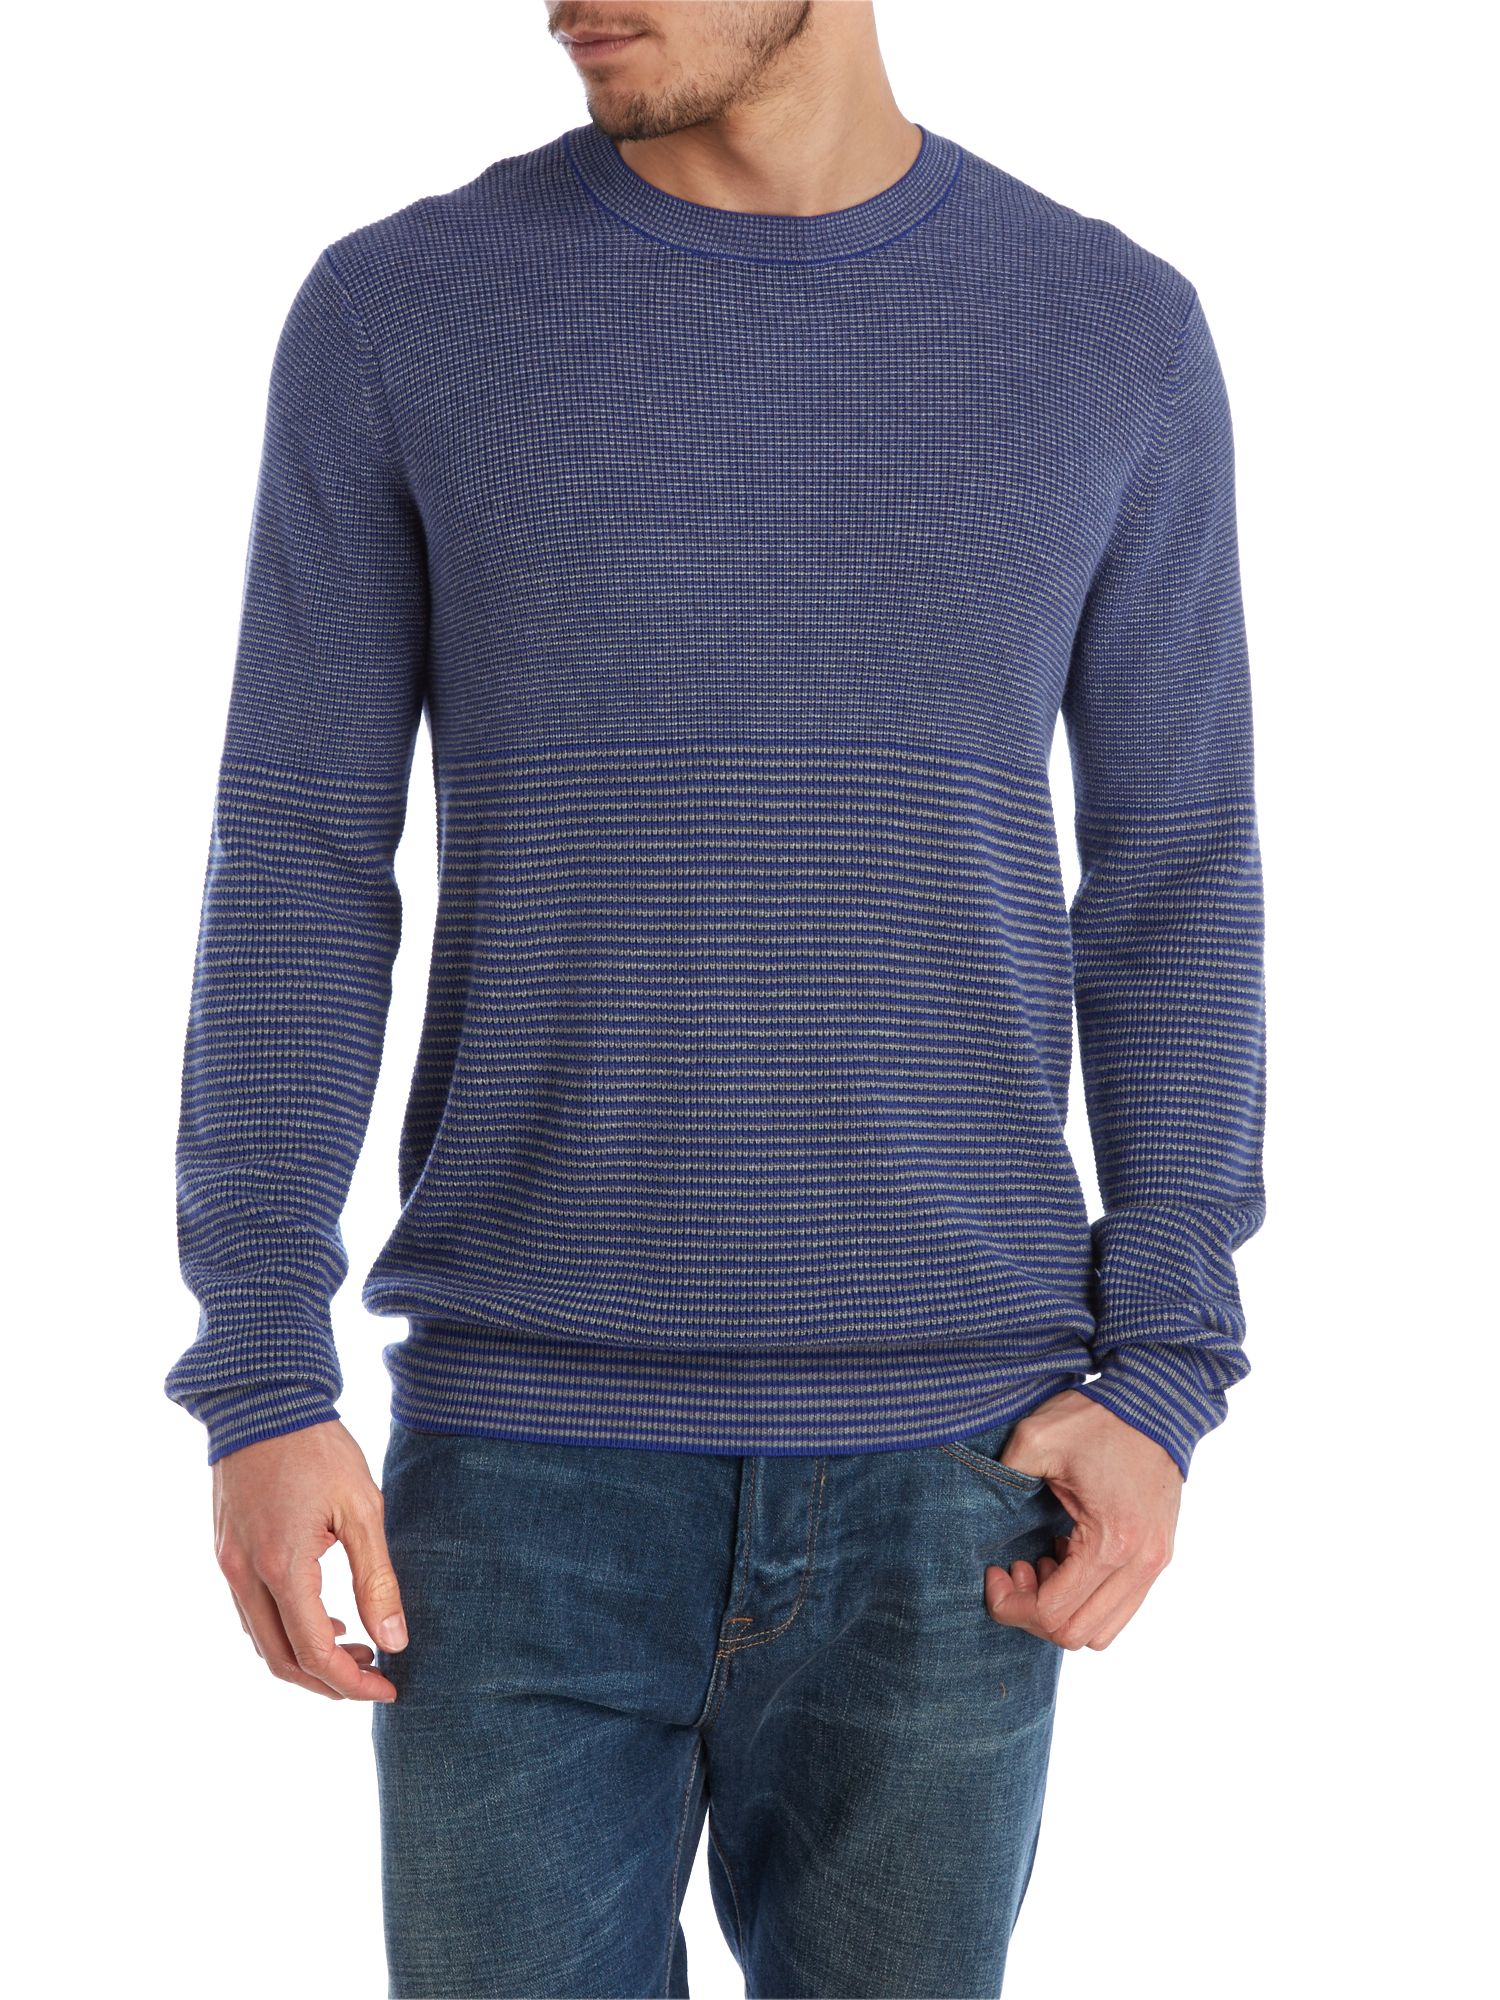 Two tone stripe knit